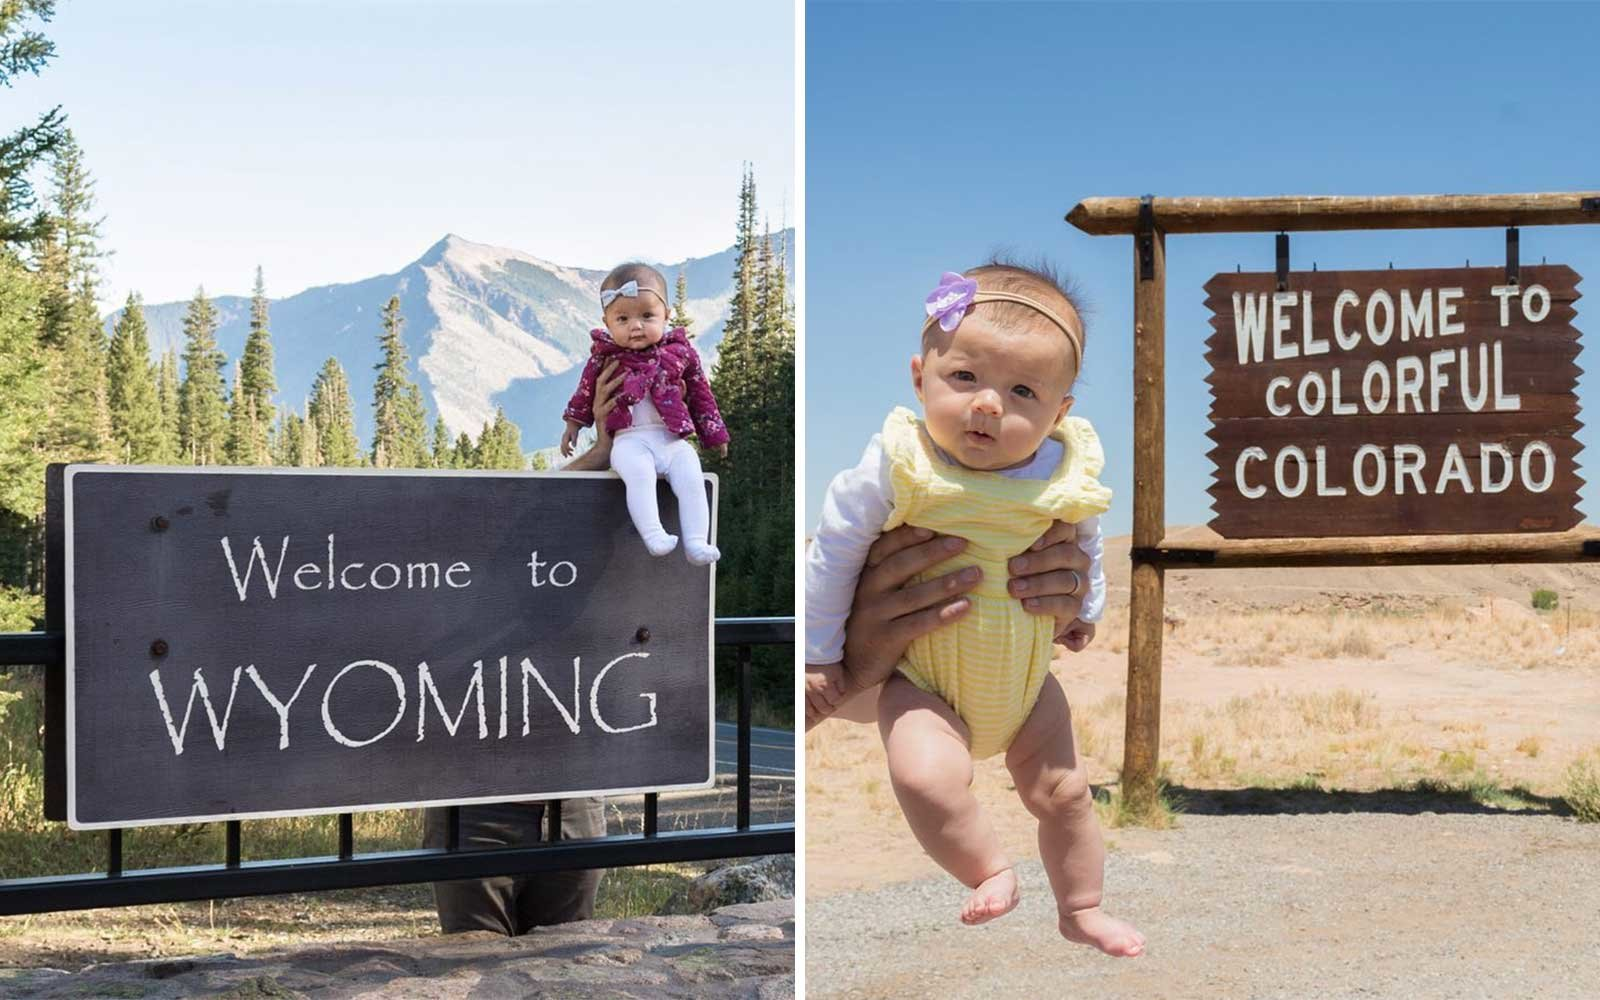 Harper Yeats set to become the youngest person to visit all 50 states